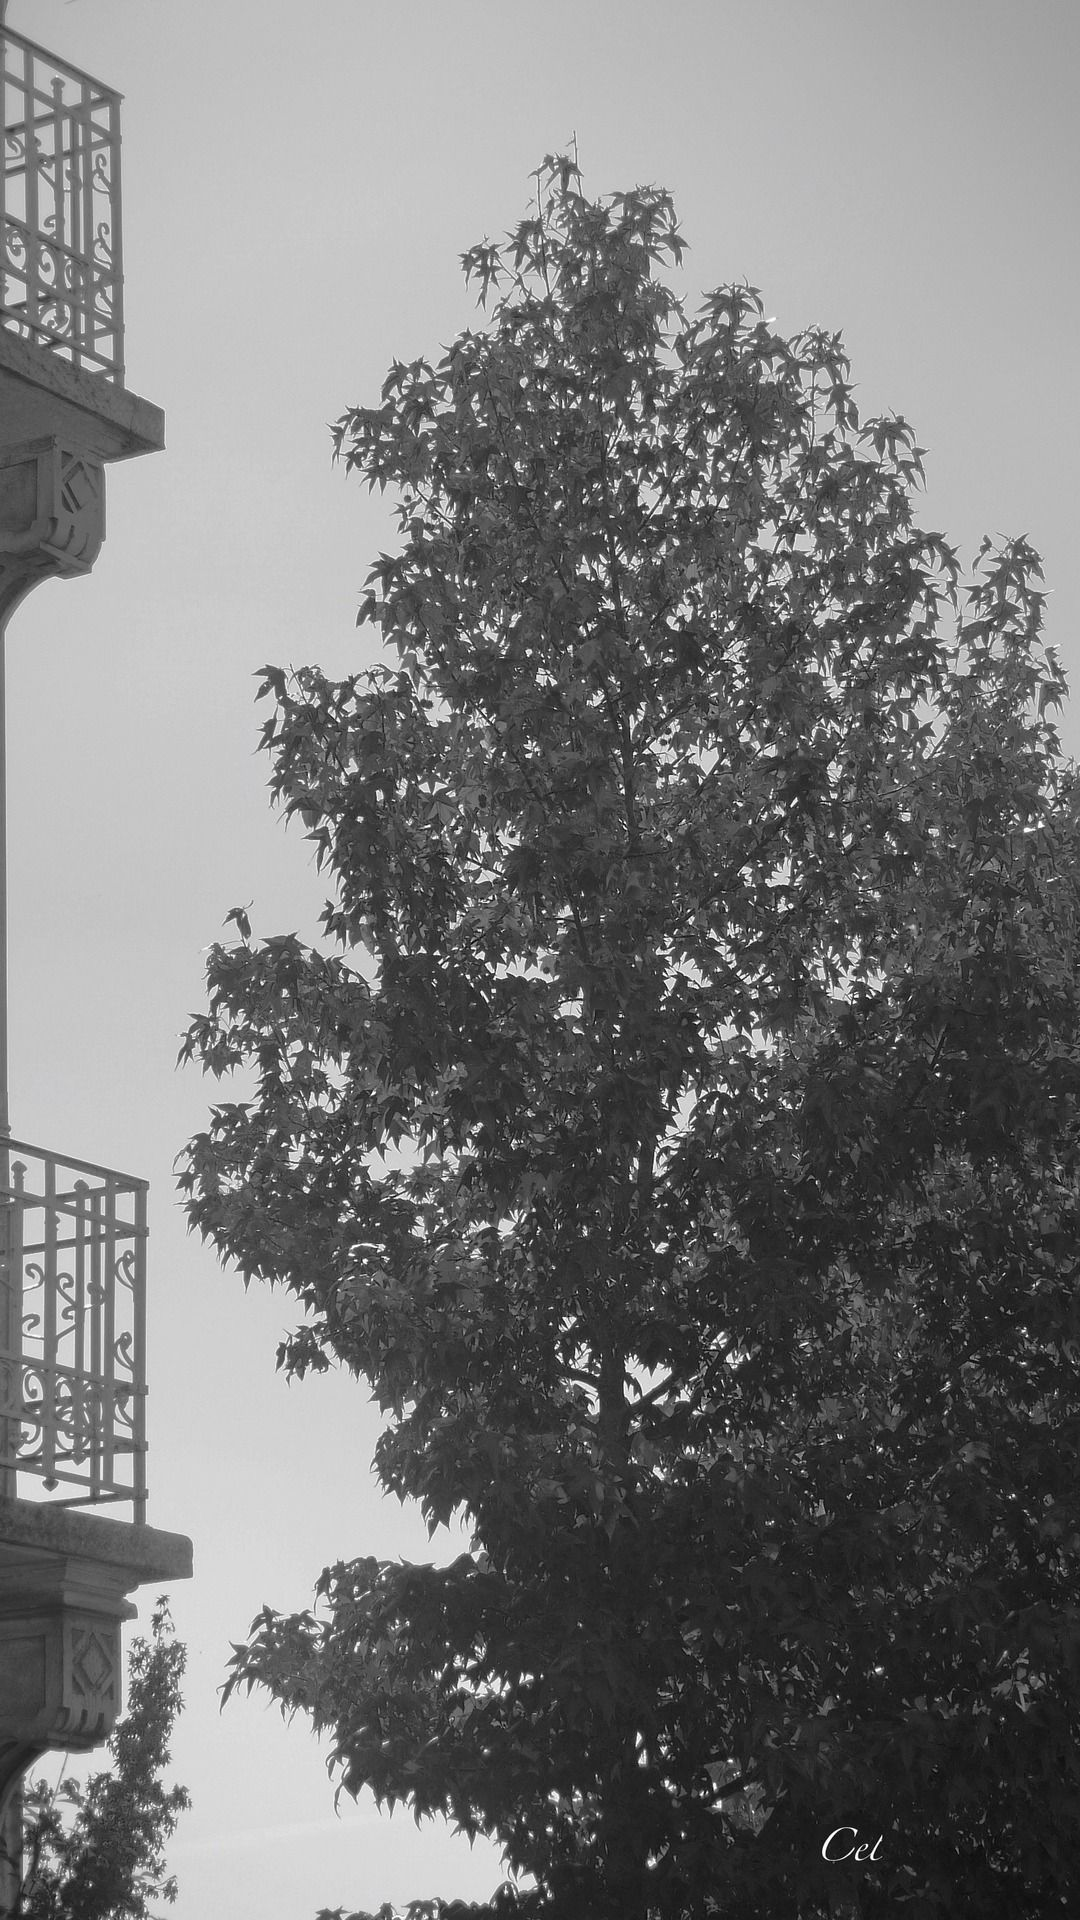 Pour aller voir la cime - #and #balconies #black #city #height #on #original #photographers #telephoto #tree #tumblr #white